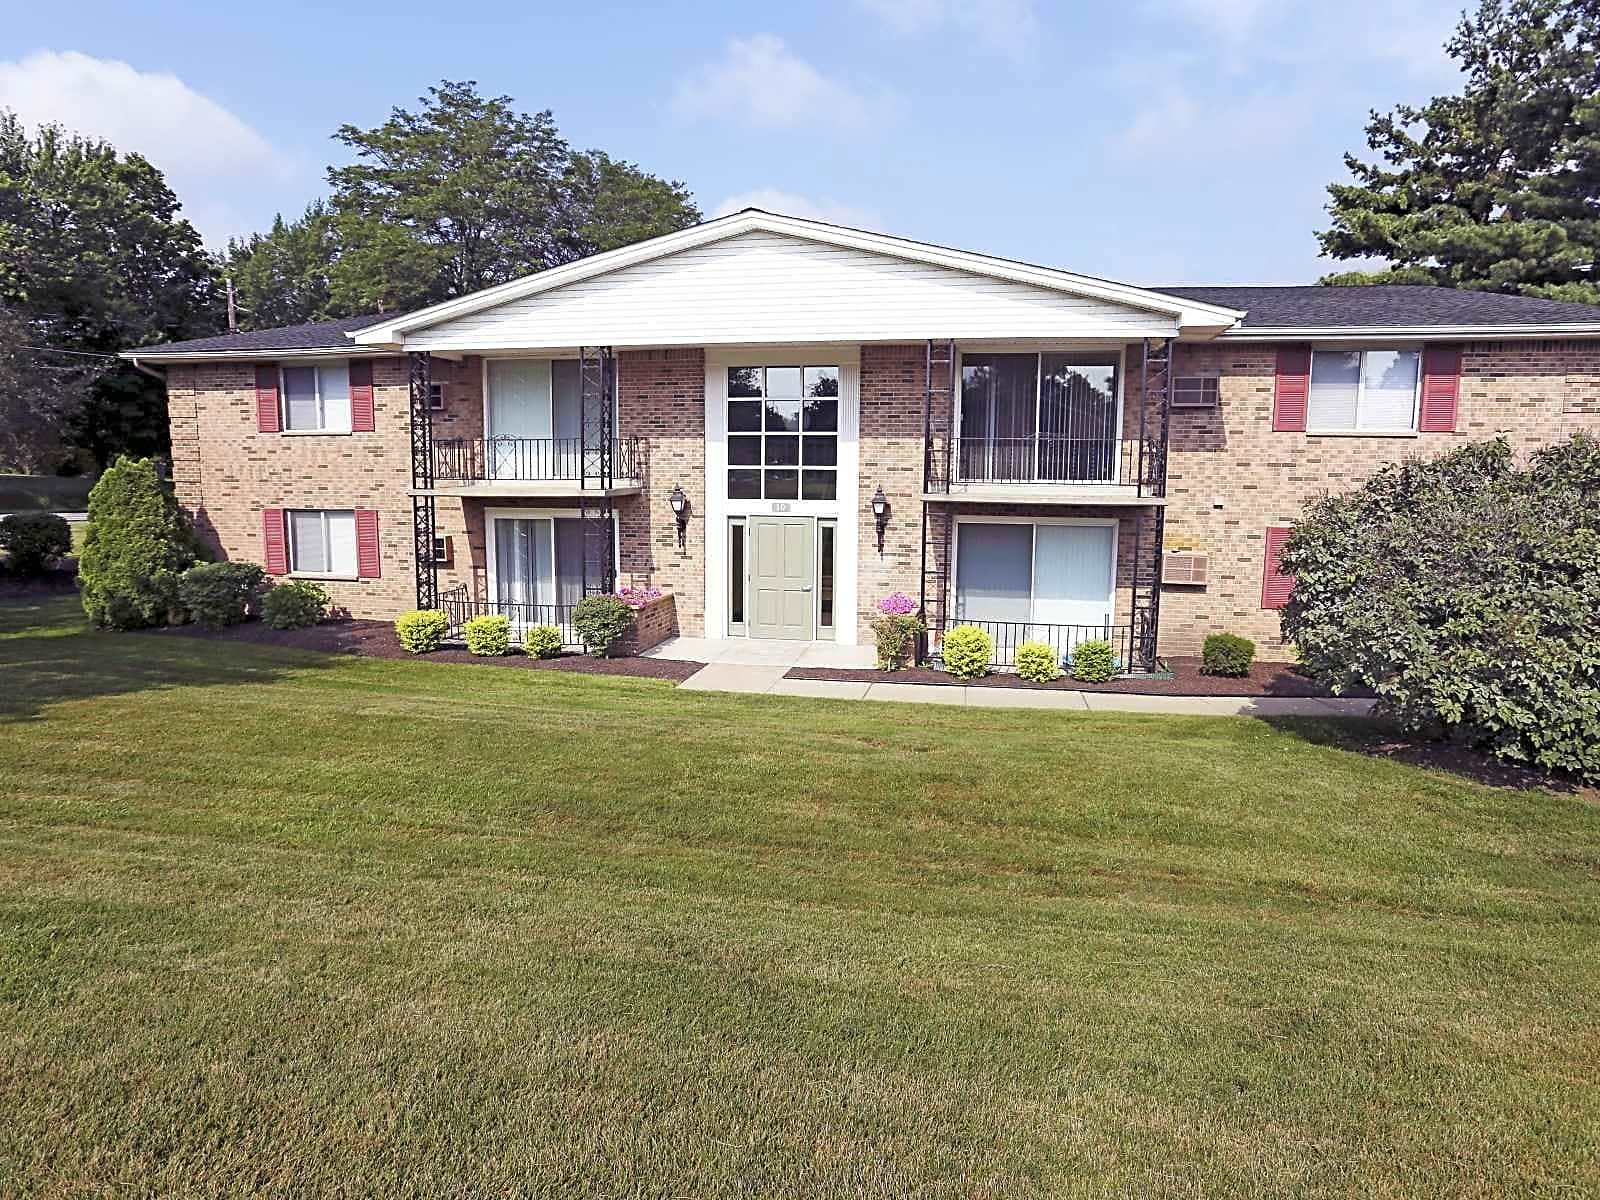 Apartments And Houses For Rent Near Me In Buffalo Ny